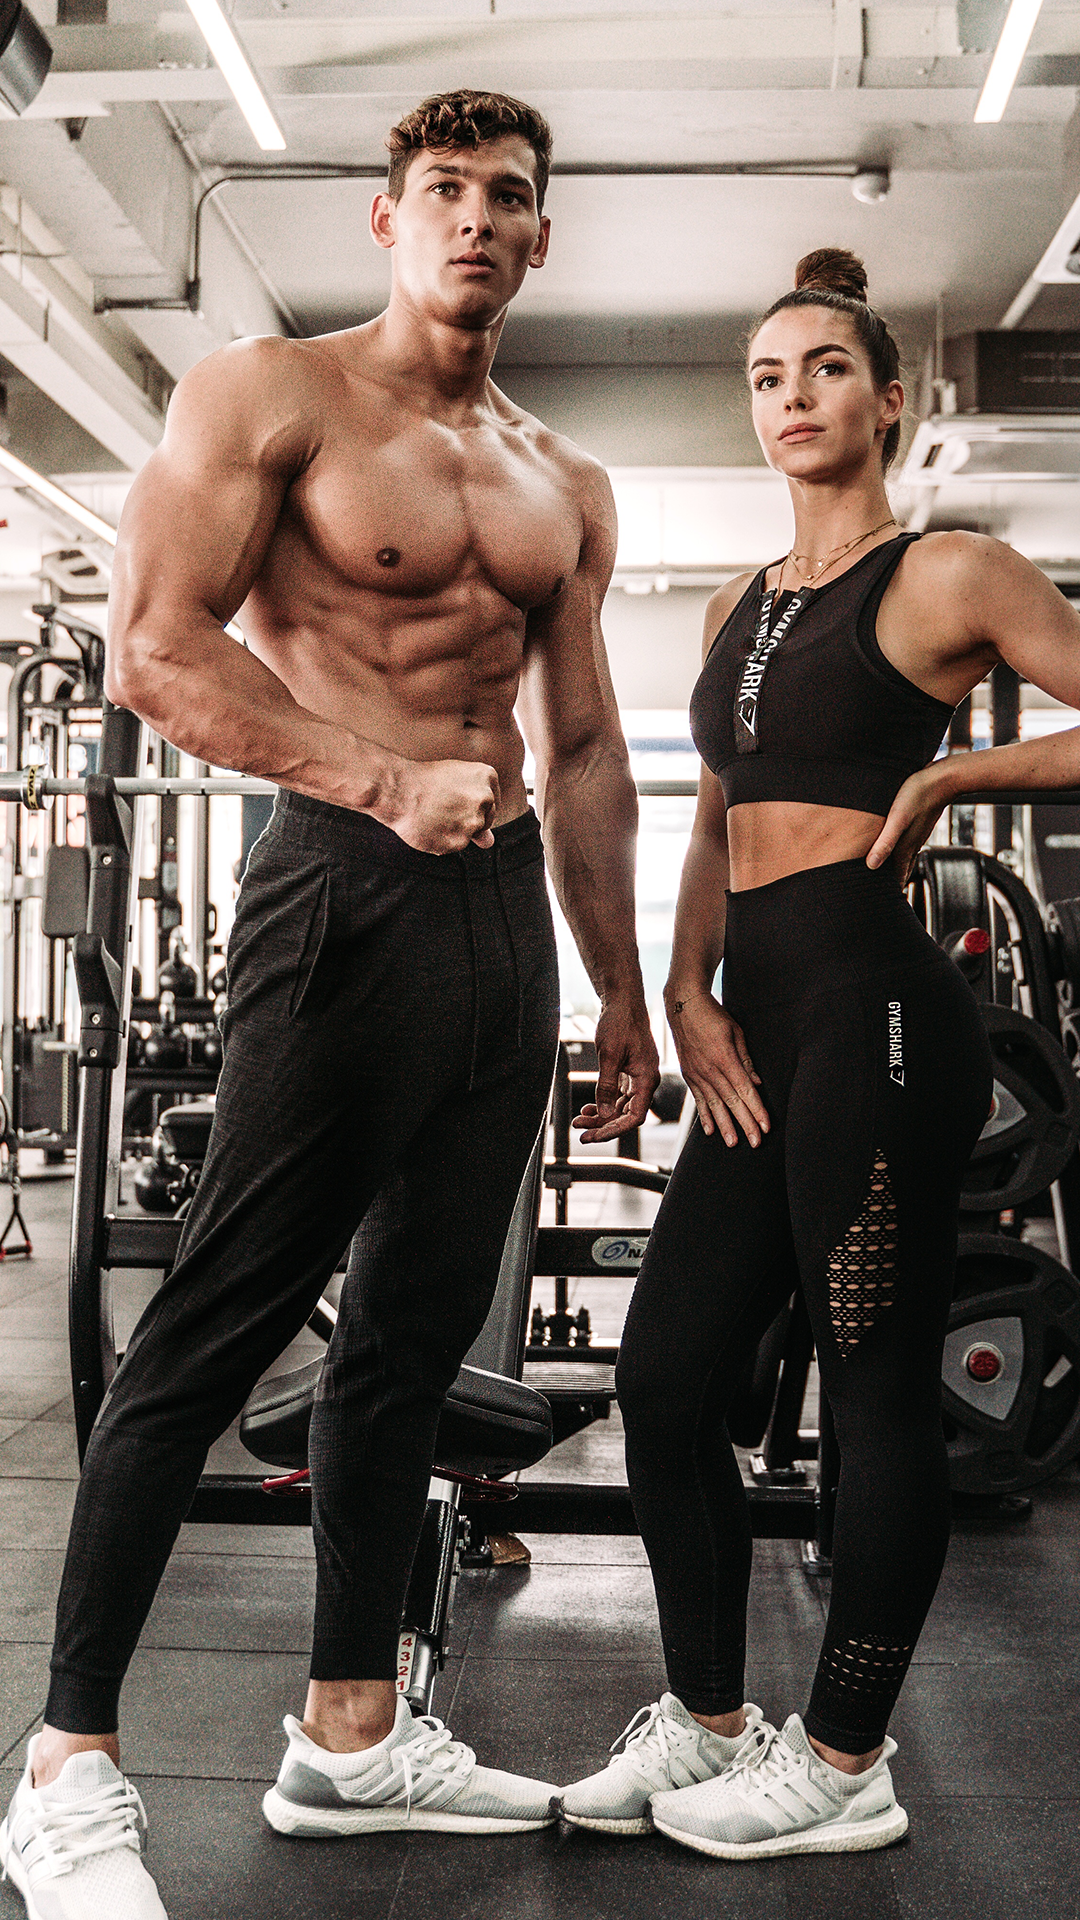 Couple Workout Outfits Workout Together And Stay Together